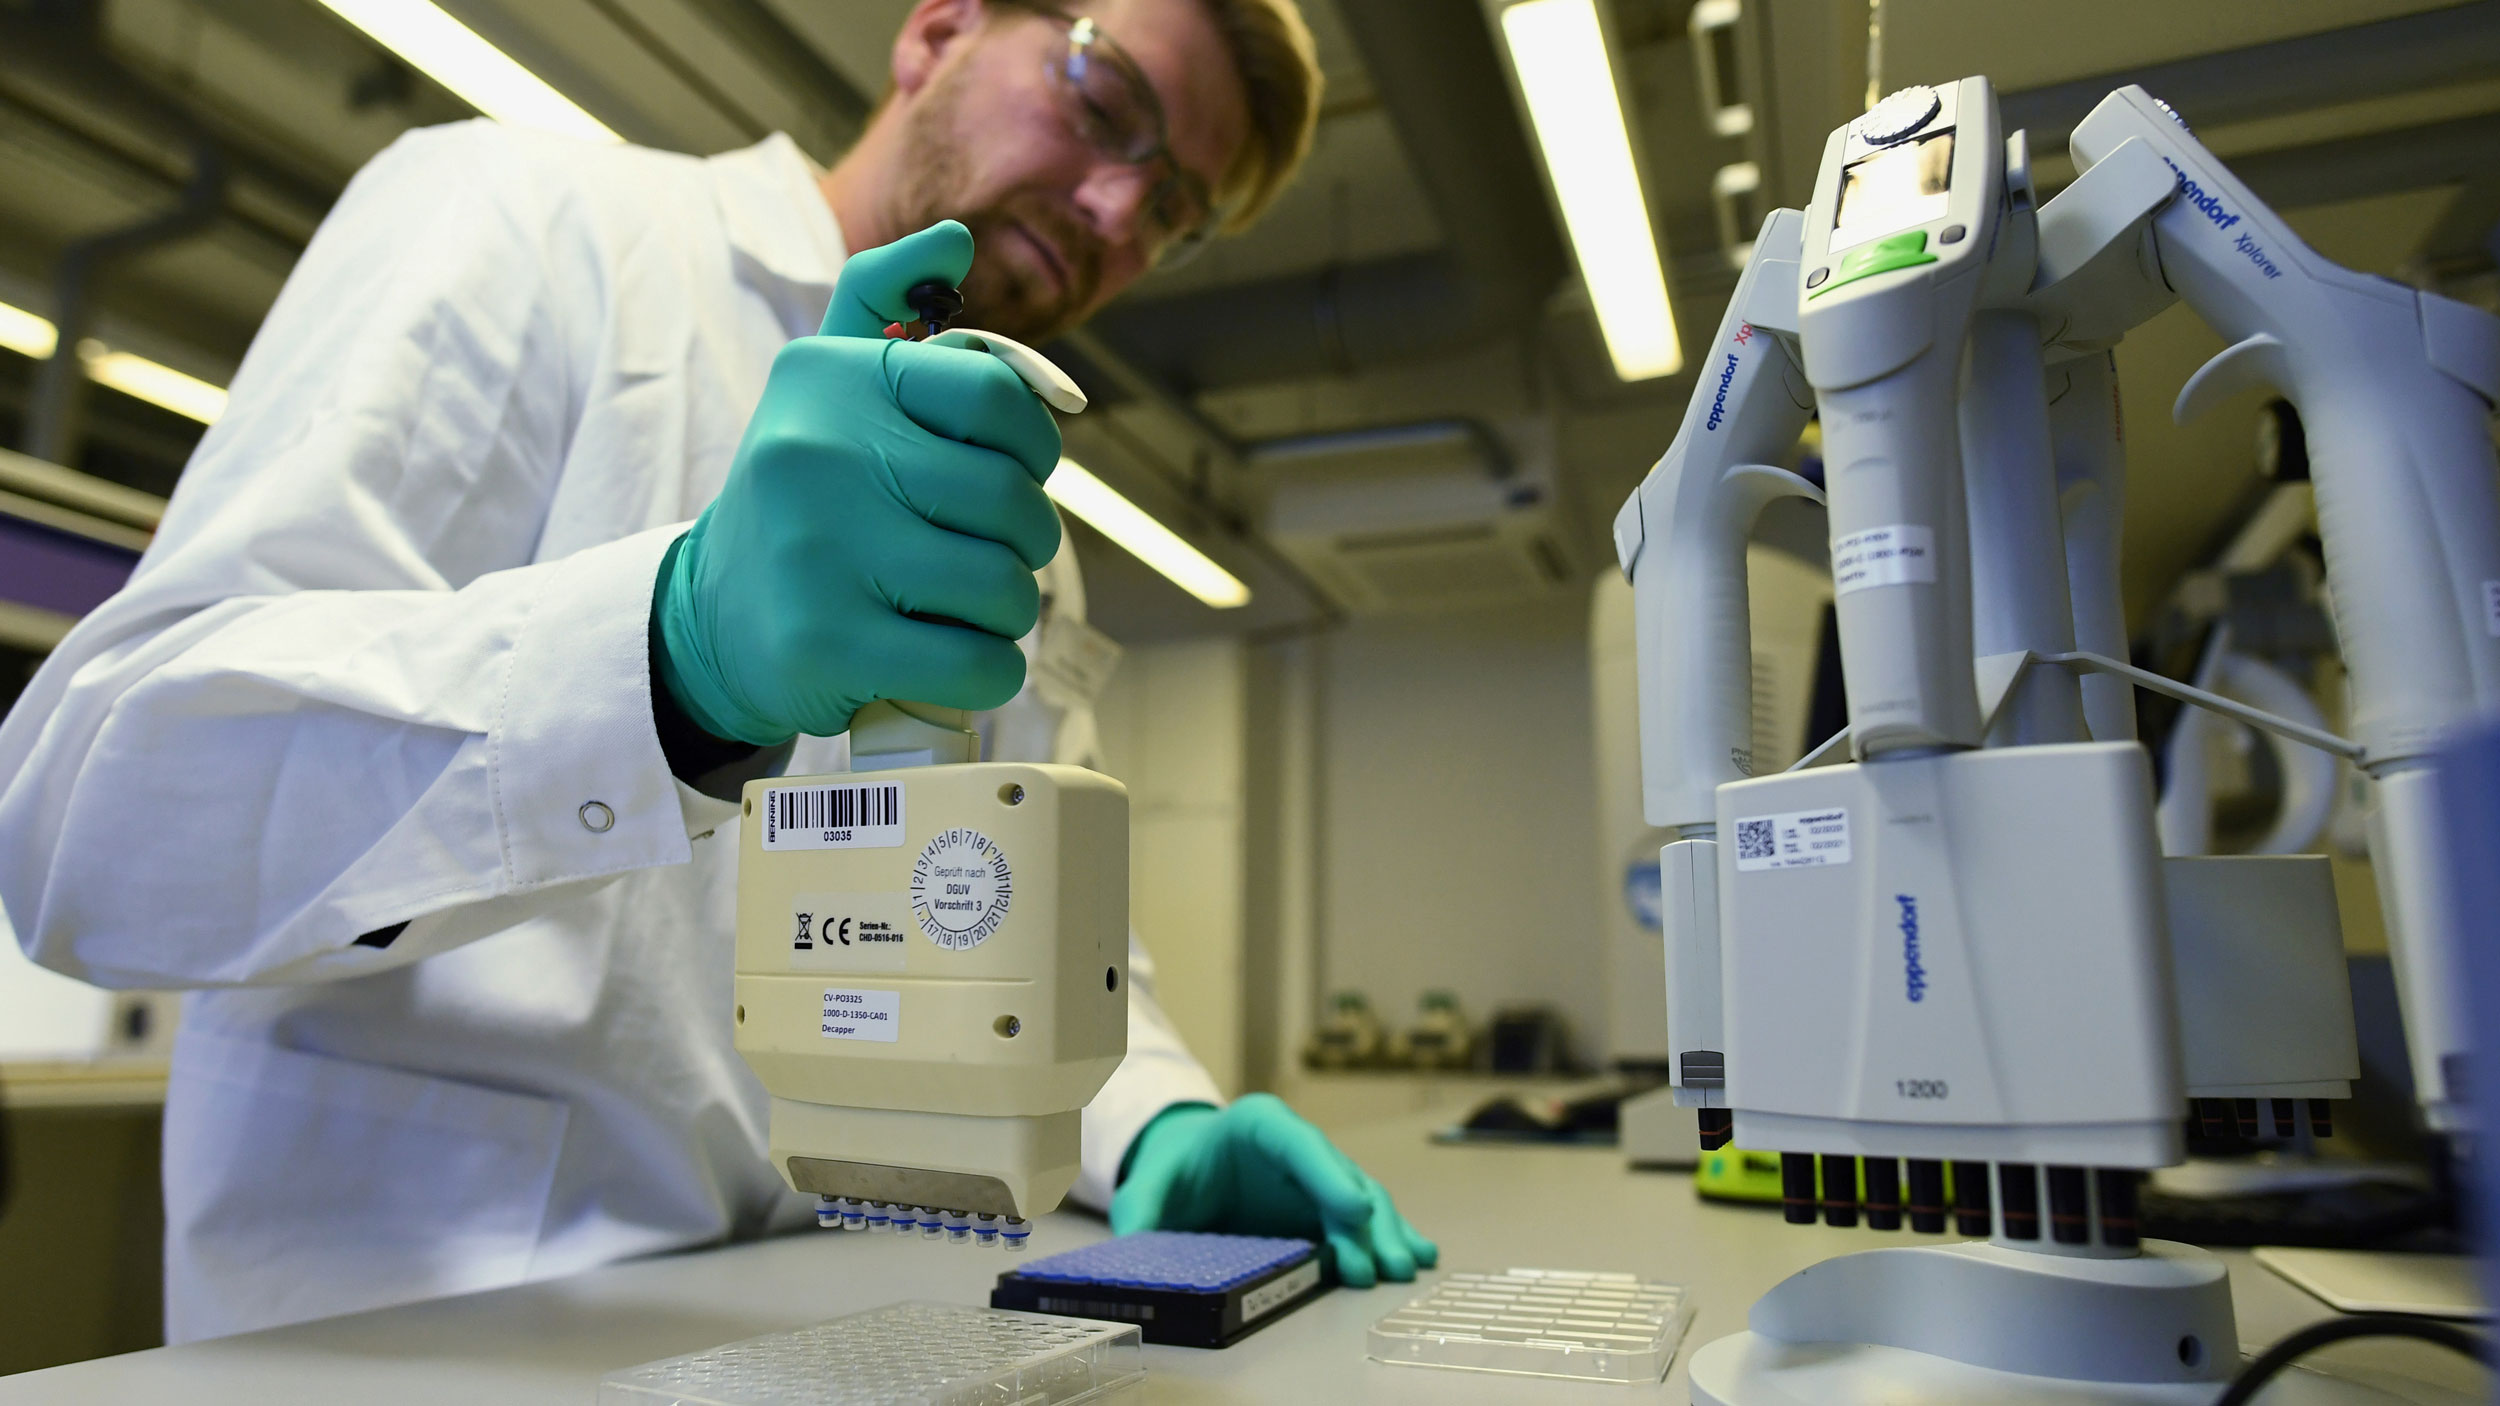 A biopharmaceutical researcher is shown wearing safety glasses, a white lab coat and protective gloves while conducting a test.